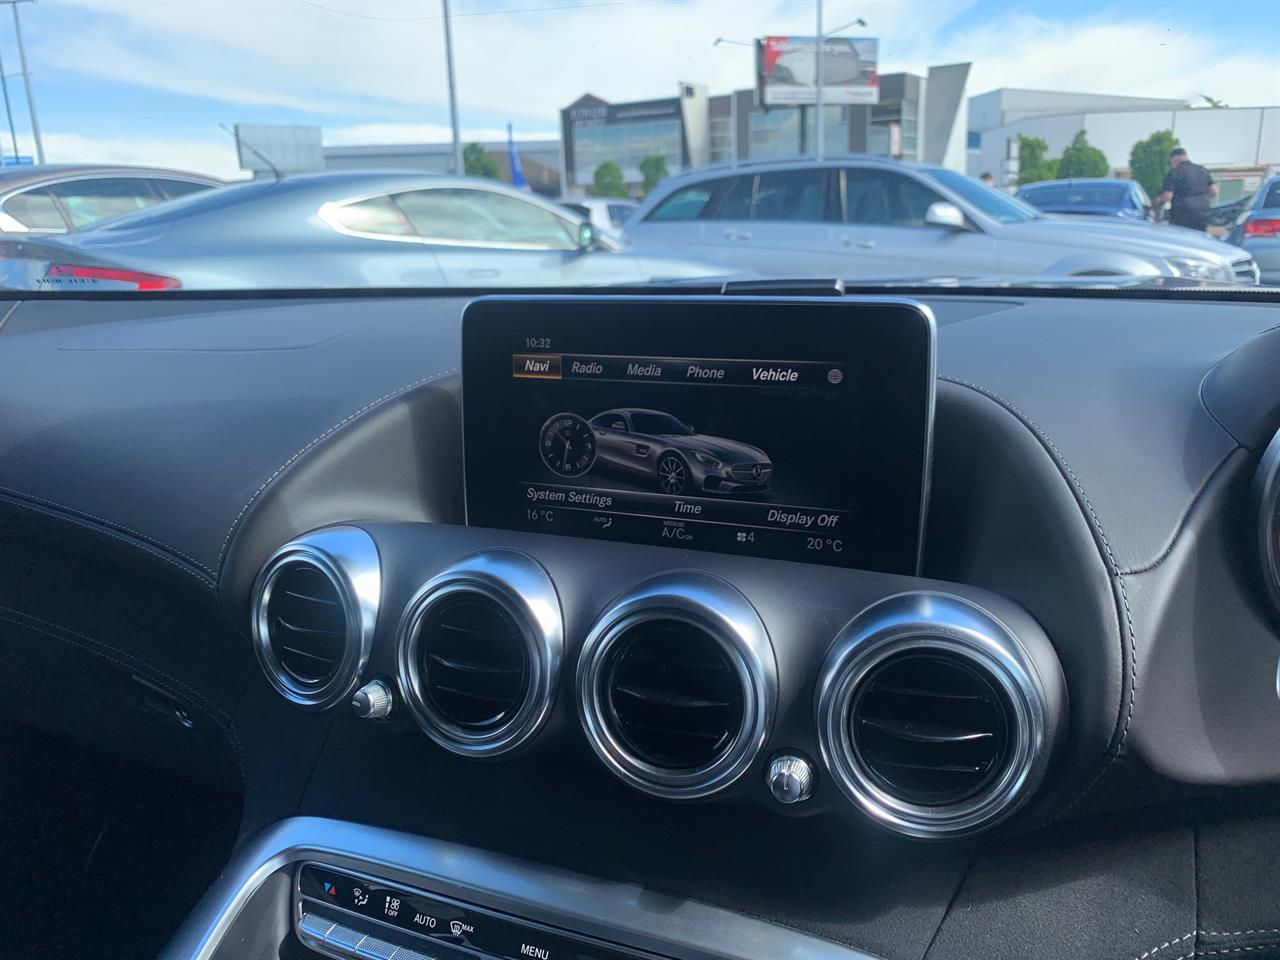 image-9, 2017 MercedesBenz AMG GT-S 4.0 V8 Coupe at Christchurch